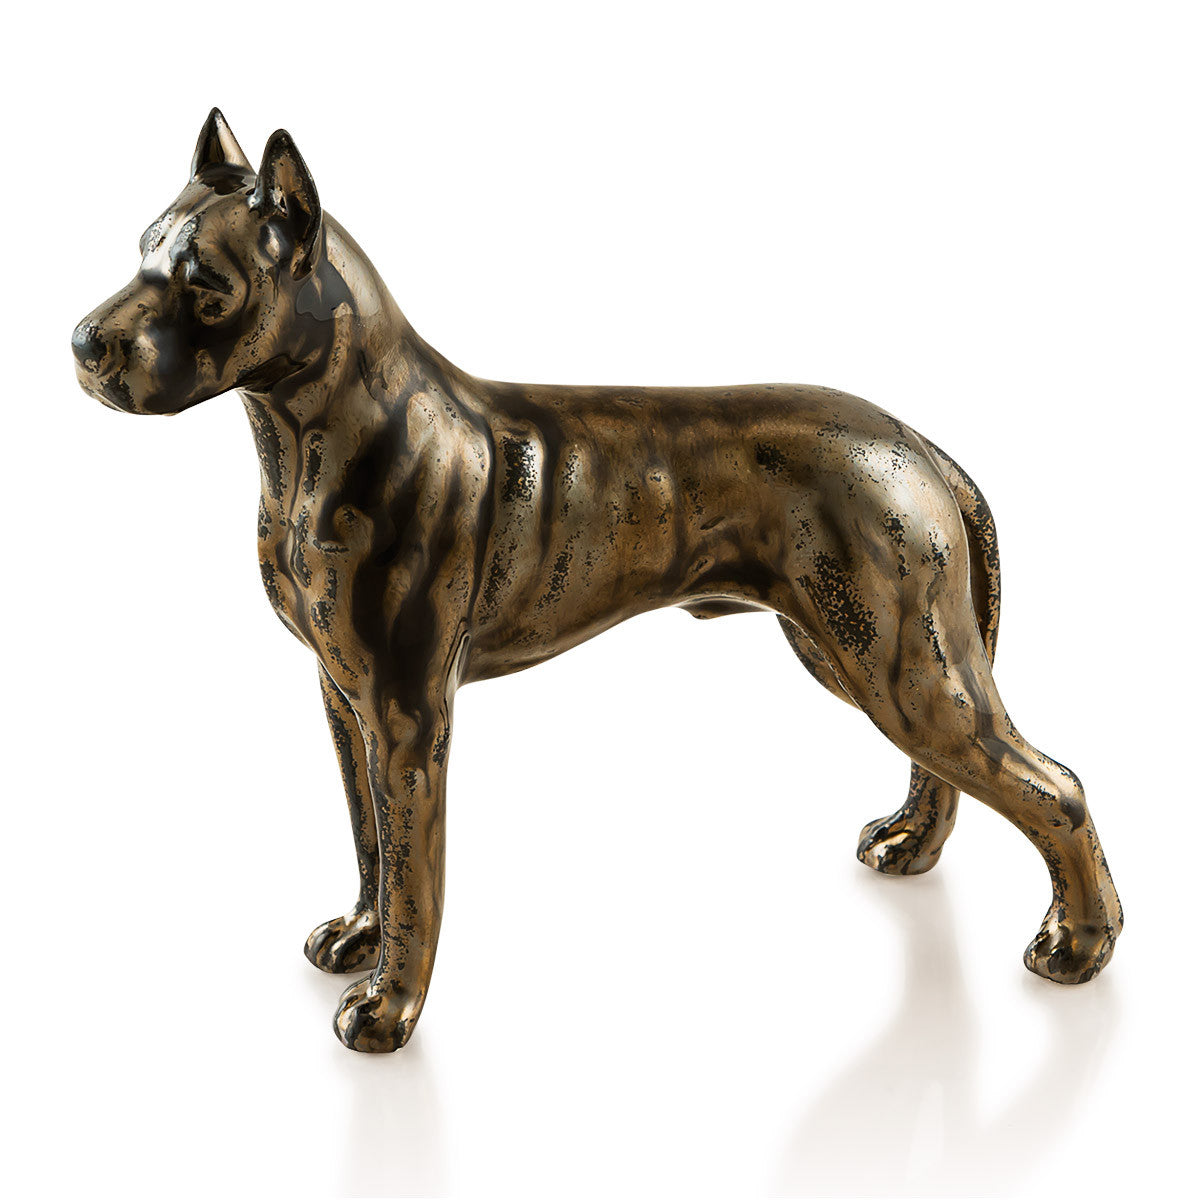 Ceramic mini boxer in burnished bronze finish